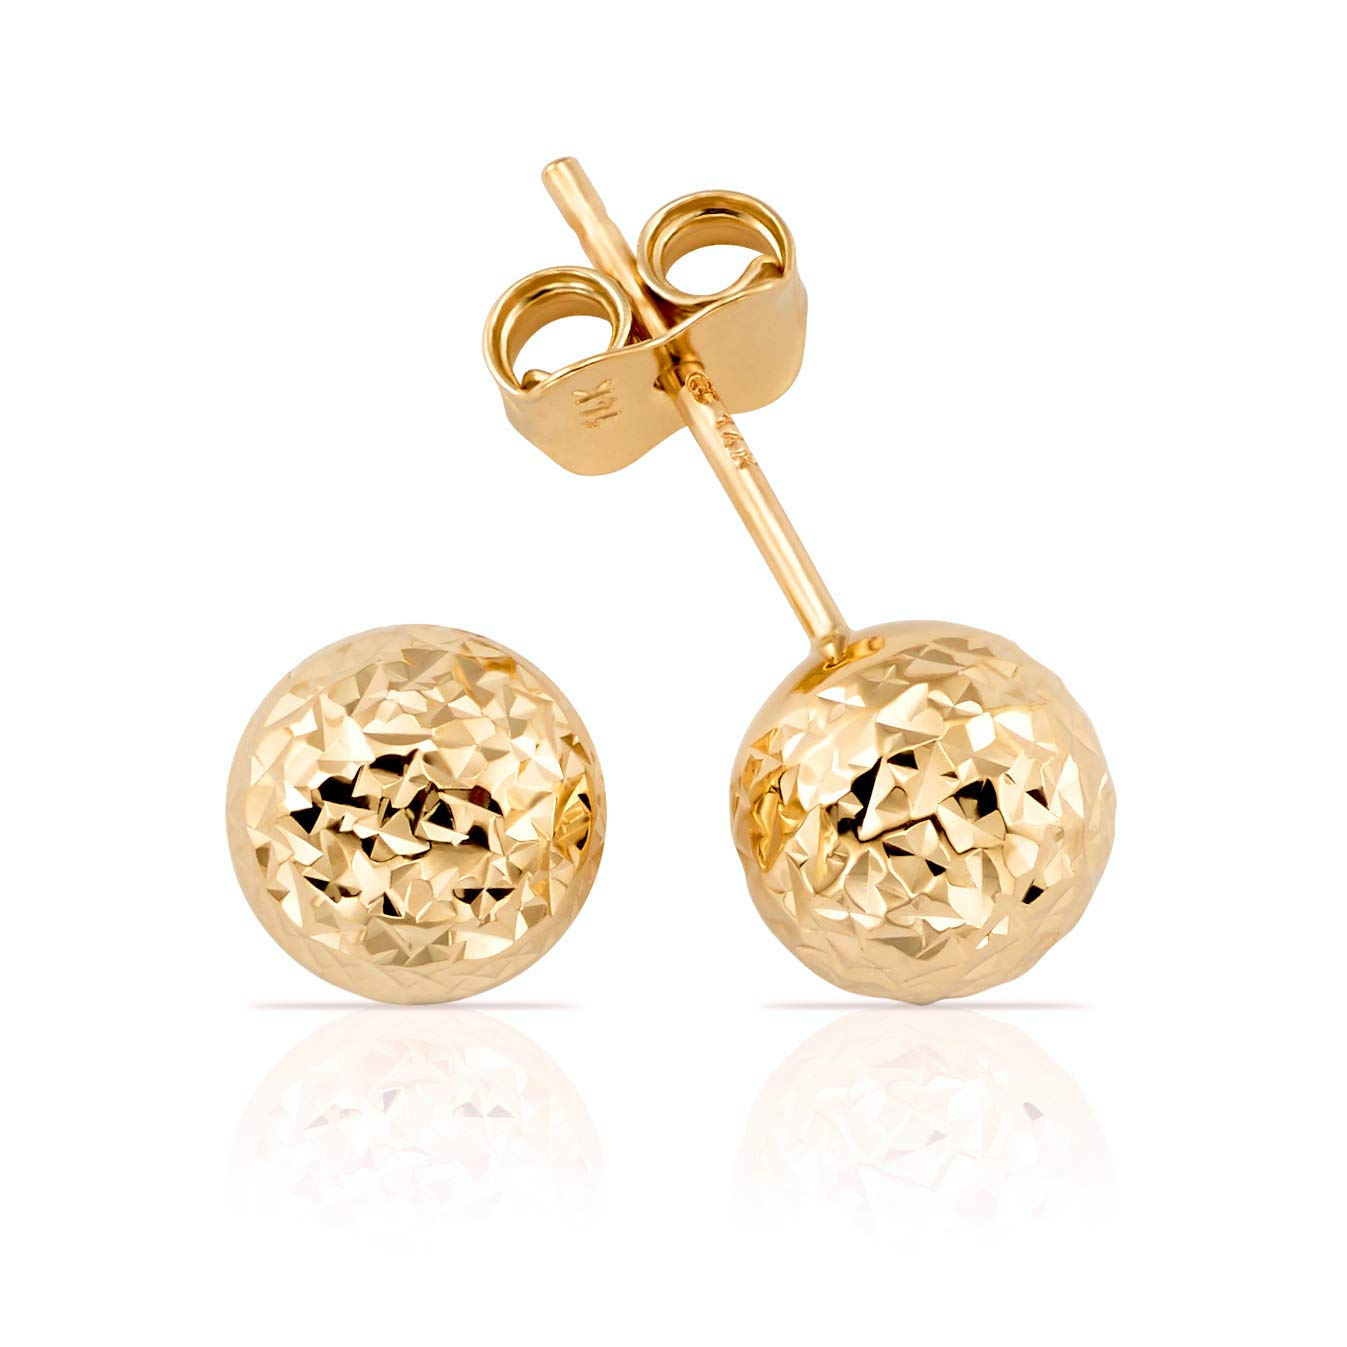 14K Gold Hammered Finish Ball Stud Earrings for Women and Girls (yellow-gold)